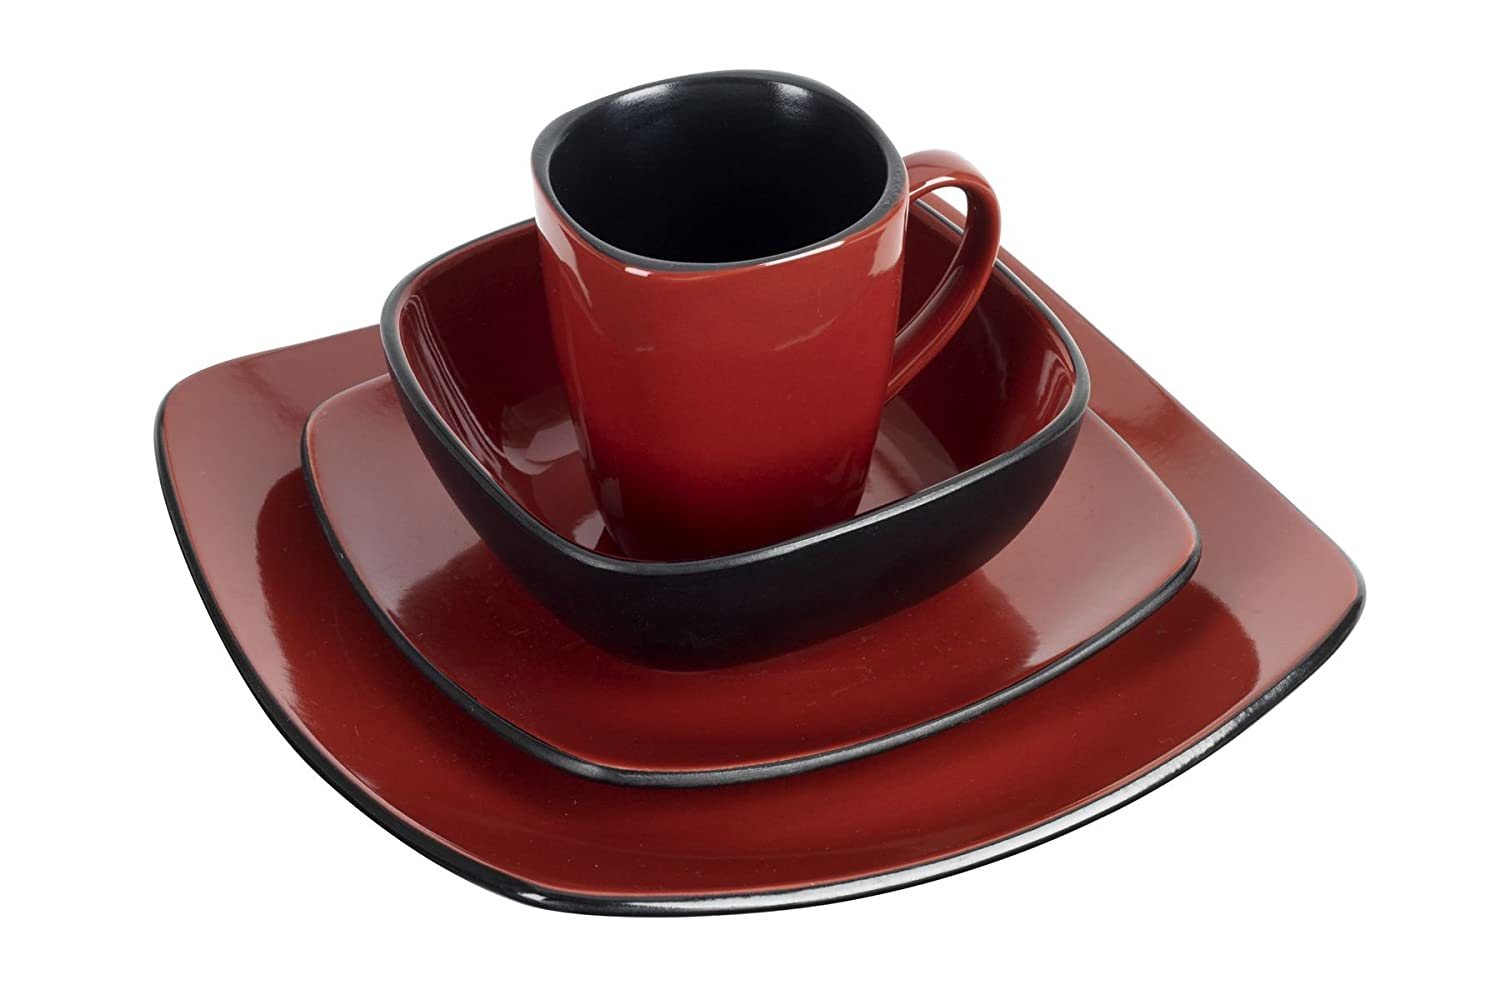 Ethos square dinner set red black 16 piece in colour box amazon co uk kitchen home